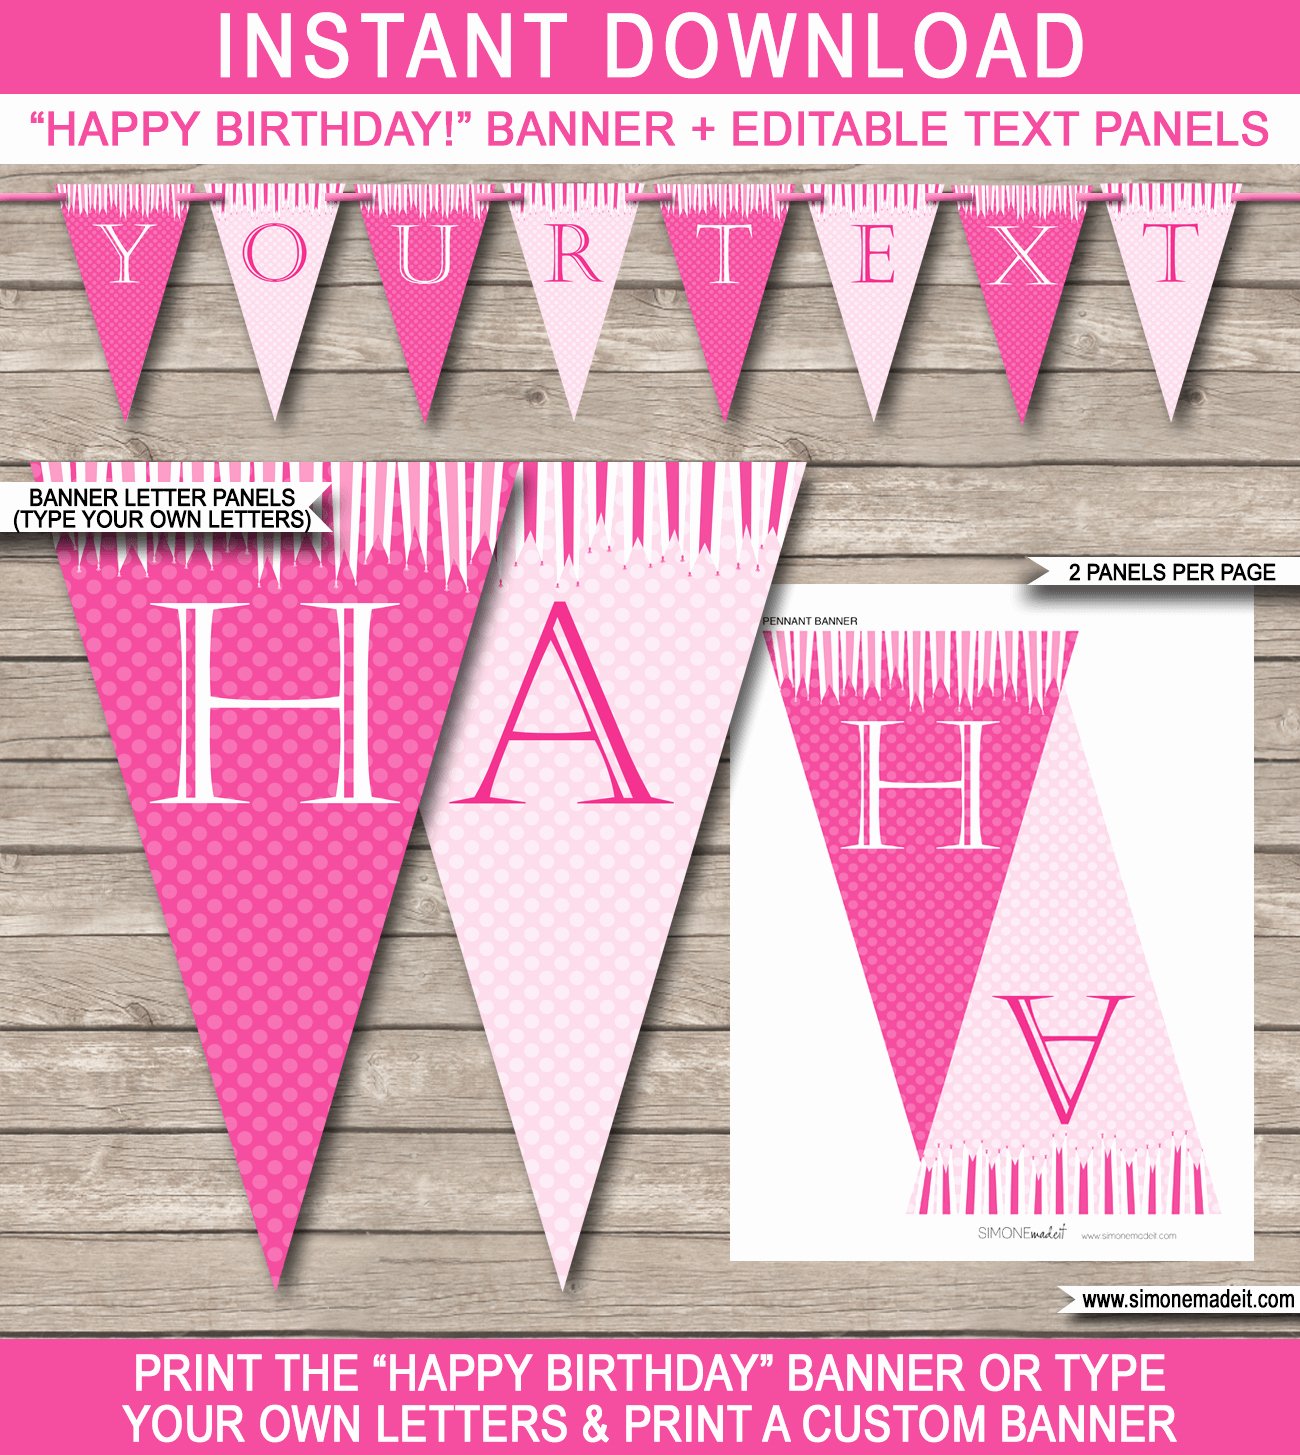 Happy Birthday Banner Print Out New Princess Party Banner Template